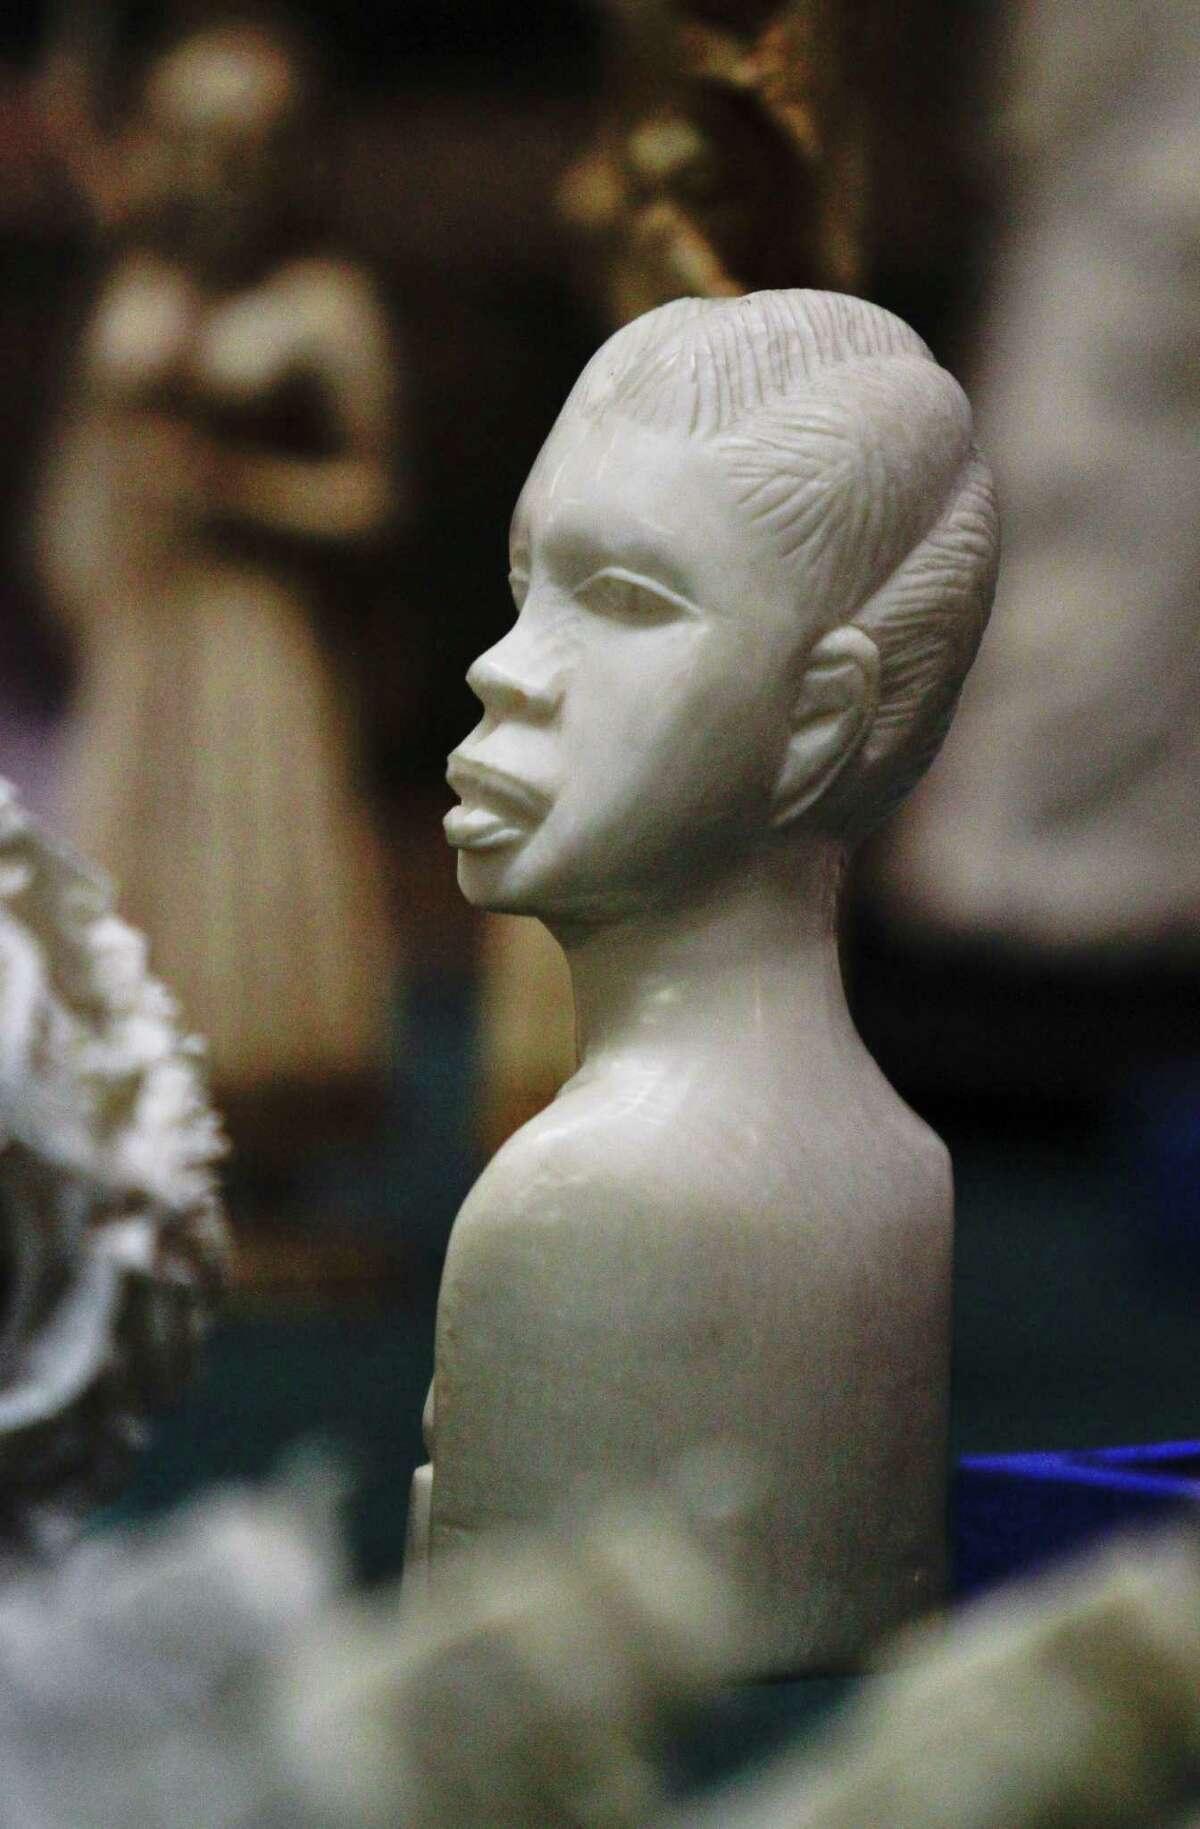 An ivory carving of a head is displayed during a press conference where Manhattan District Attorney Cyrus R. Vance, Jr., announced the guilty pleas of two ivory dealers and their businesses for selling and offering for sale illegal elephant ivory with a retail value of more than $2 million on Thursday, July 12, 2012.